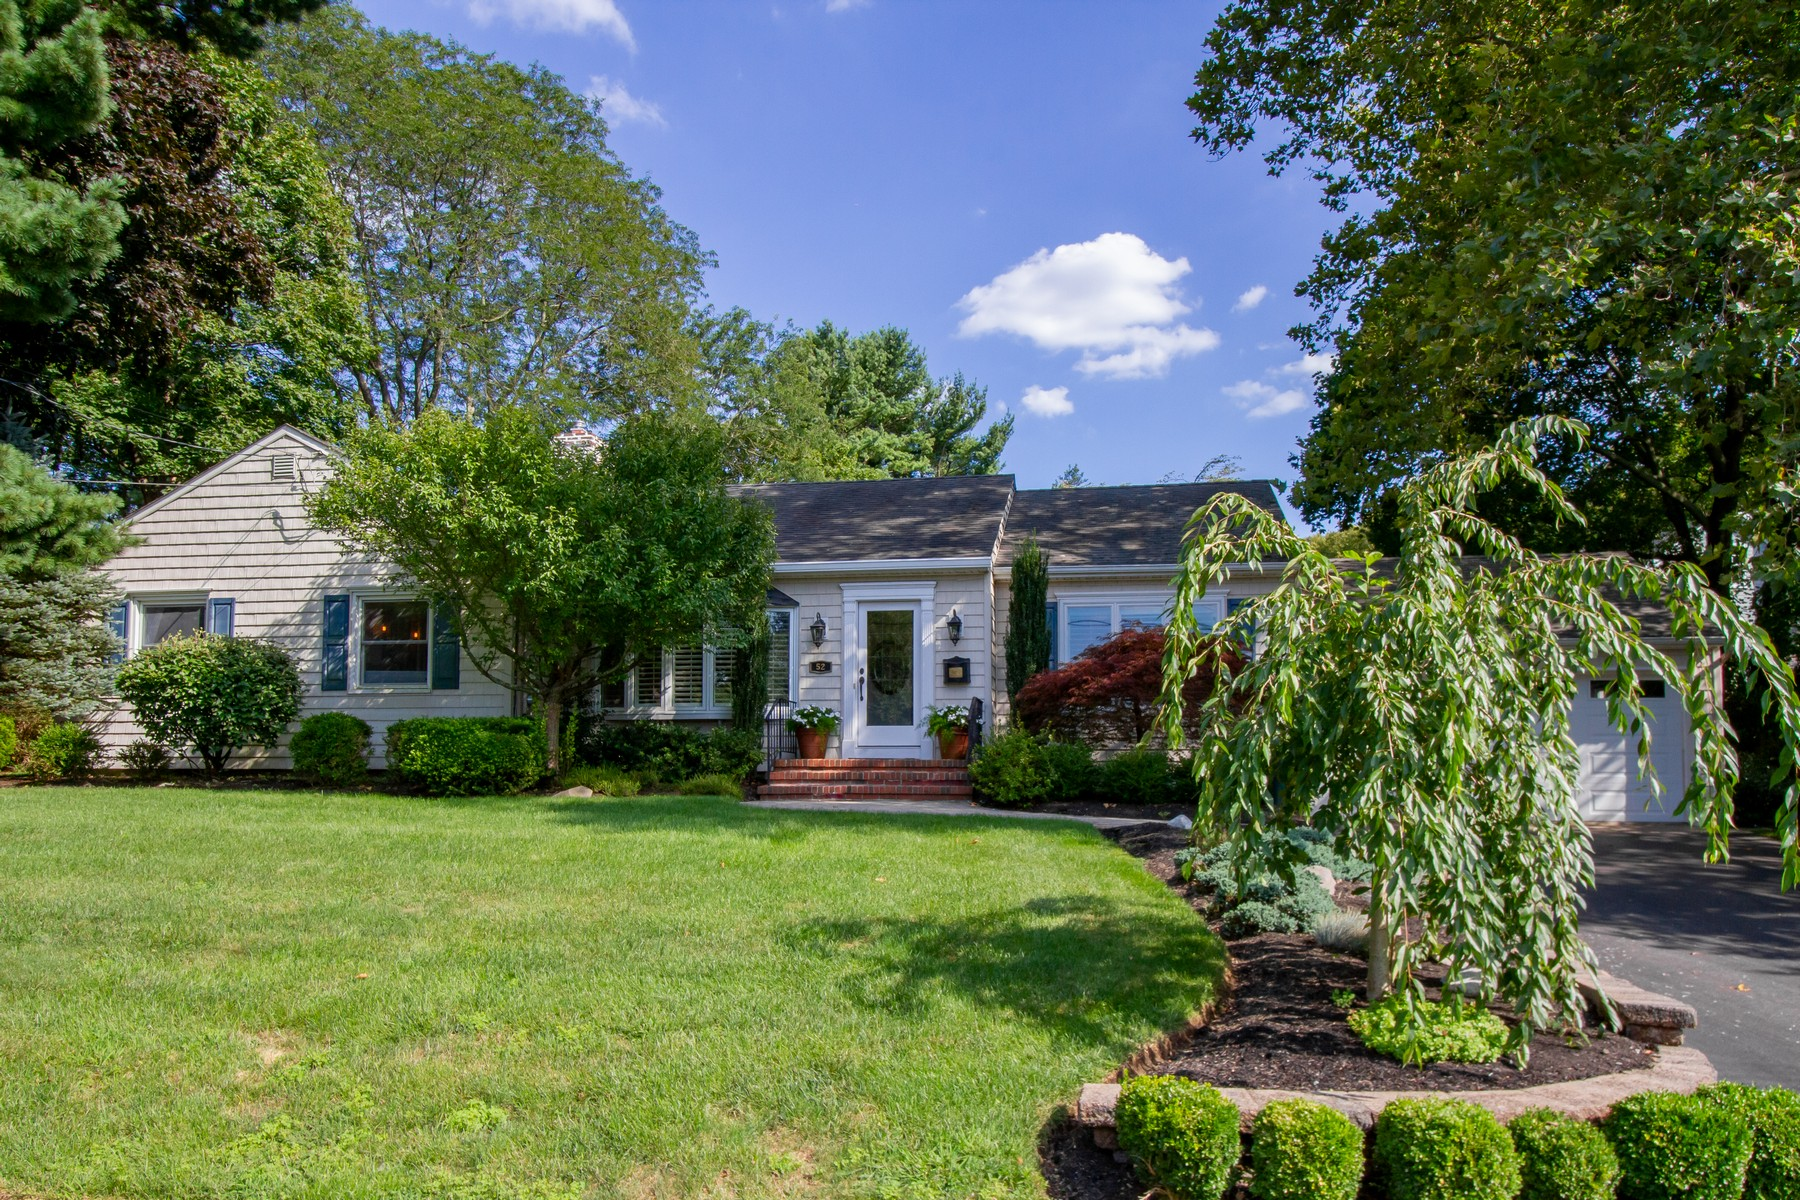 Single Family Homes for Sale at Picture perfect Ranch 52 Hillcrest Ave Fair Haven, New Jersey 07704 United States